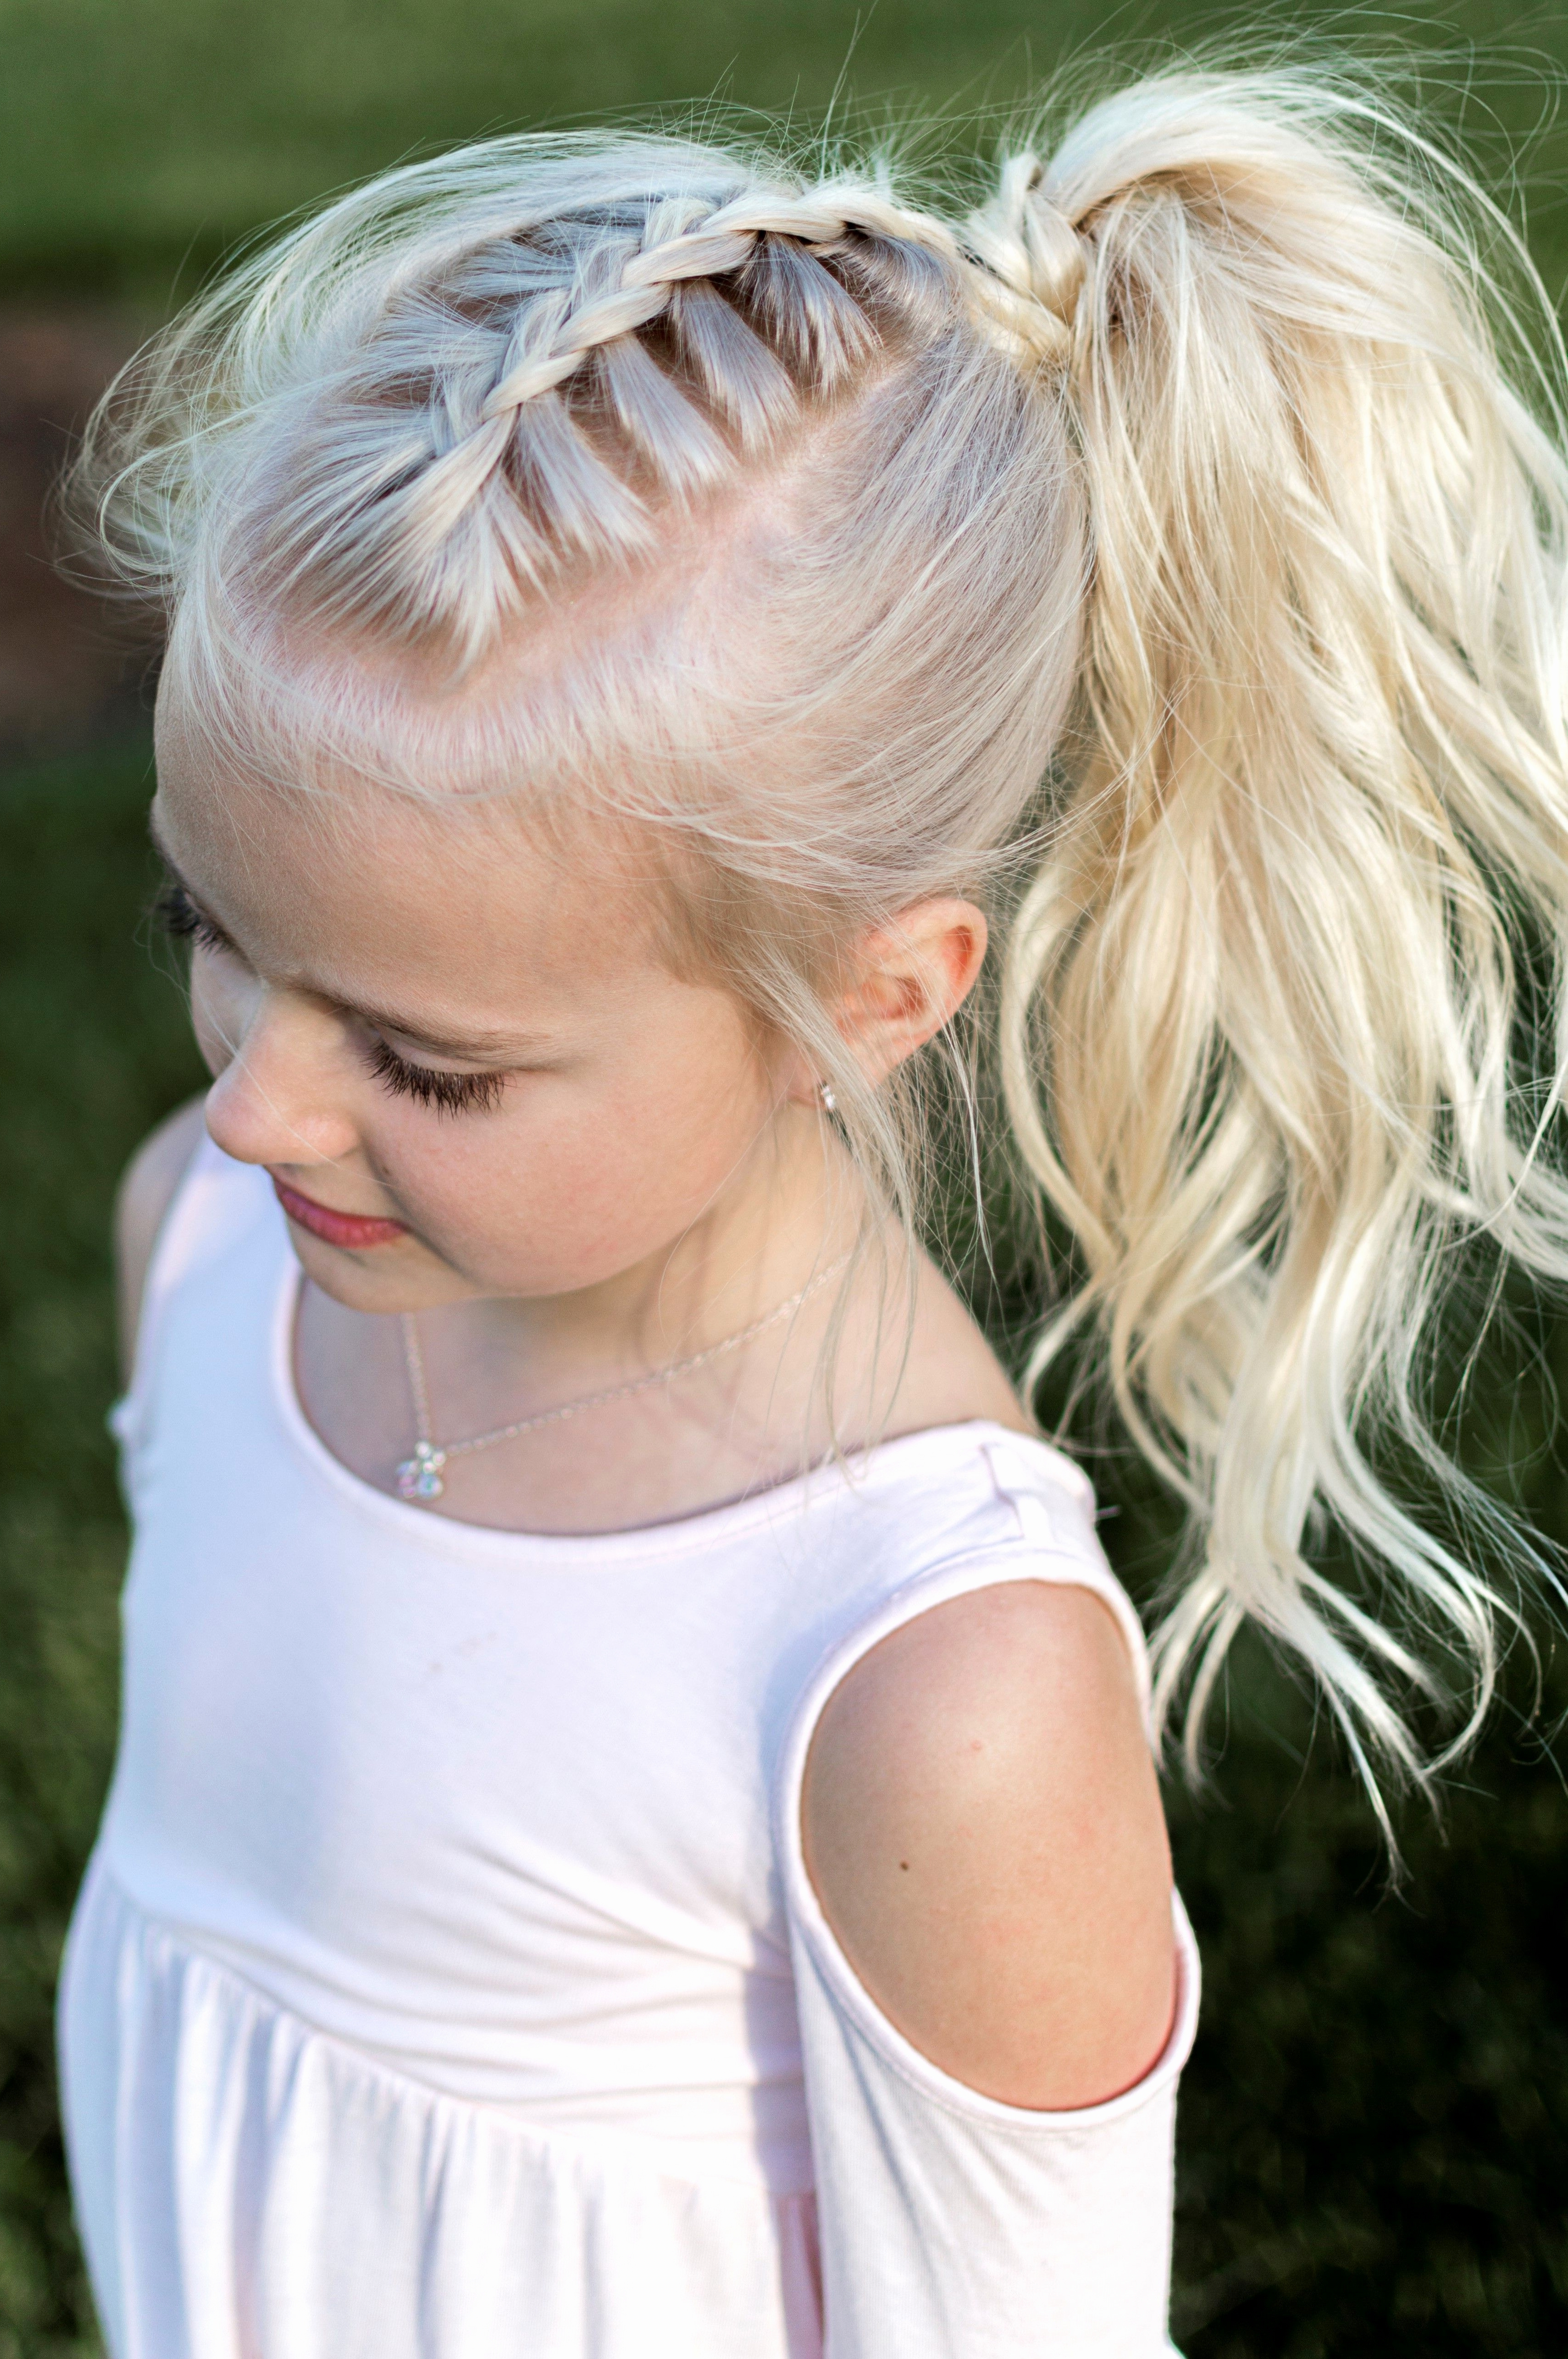 Preferred Braided Hairstyles For White Girl Regarding Hairstyles For White Women Fresh Little Girl Hairstyle French Braid (View 10 of 15)